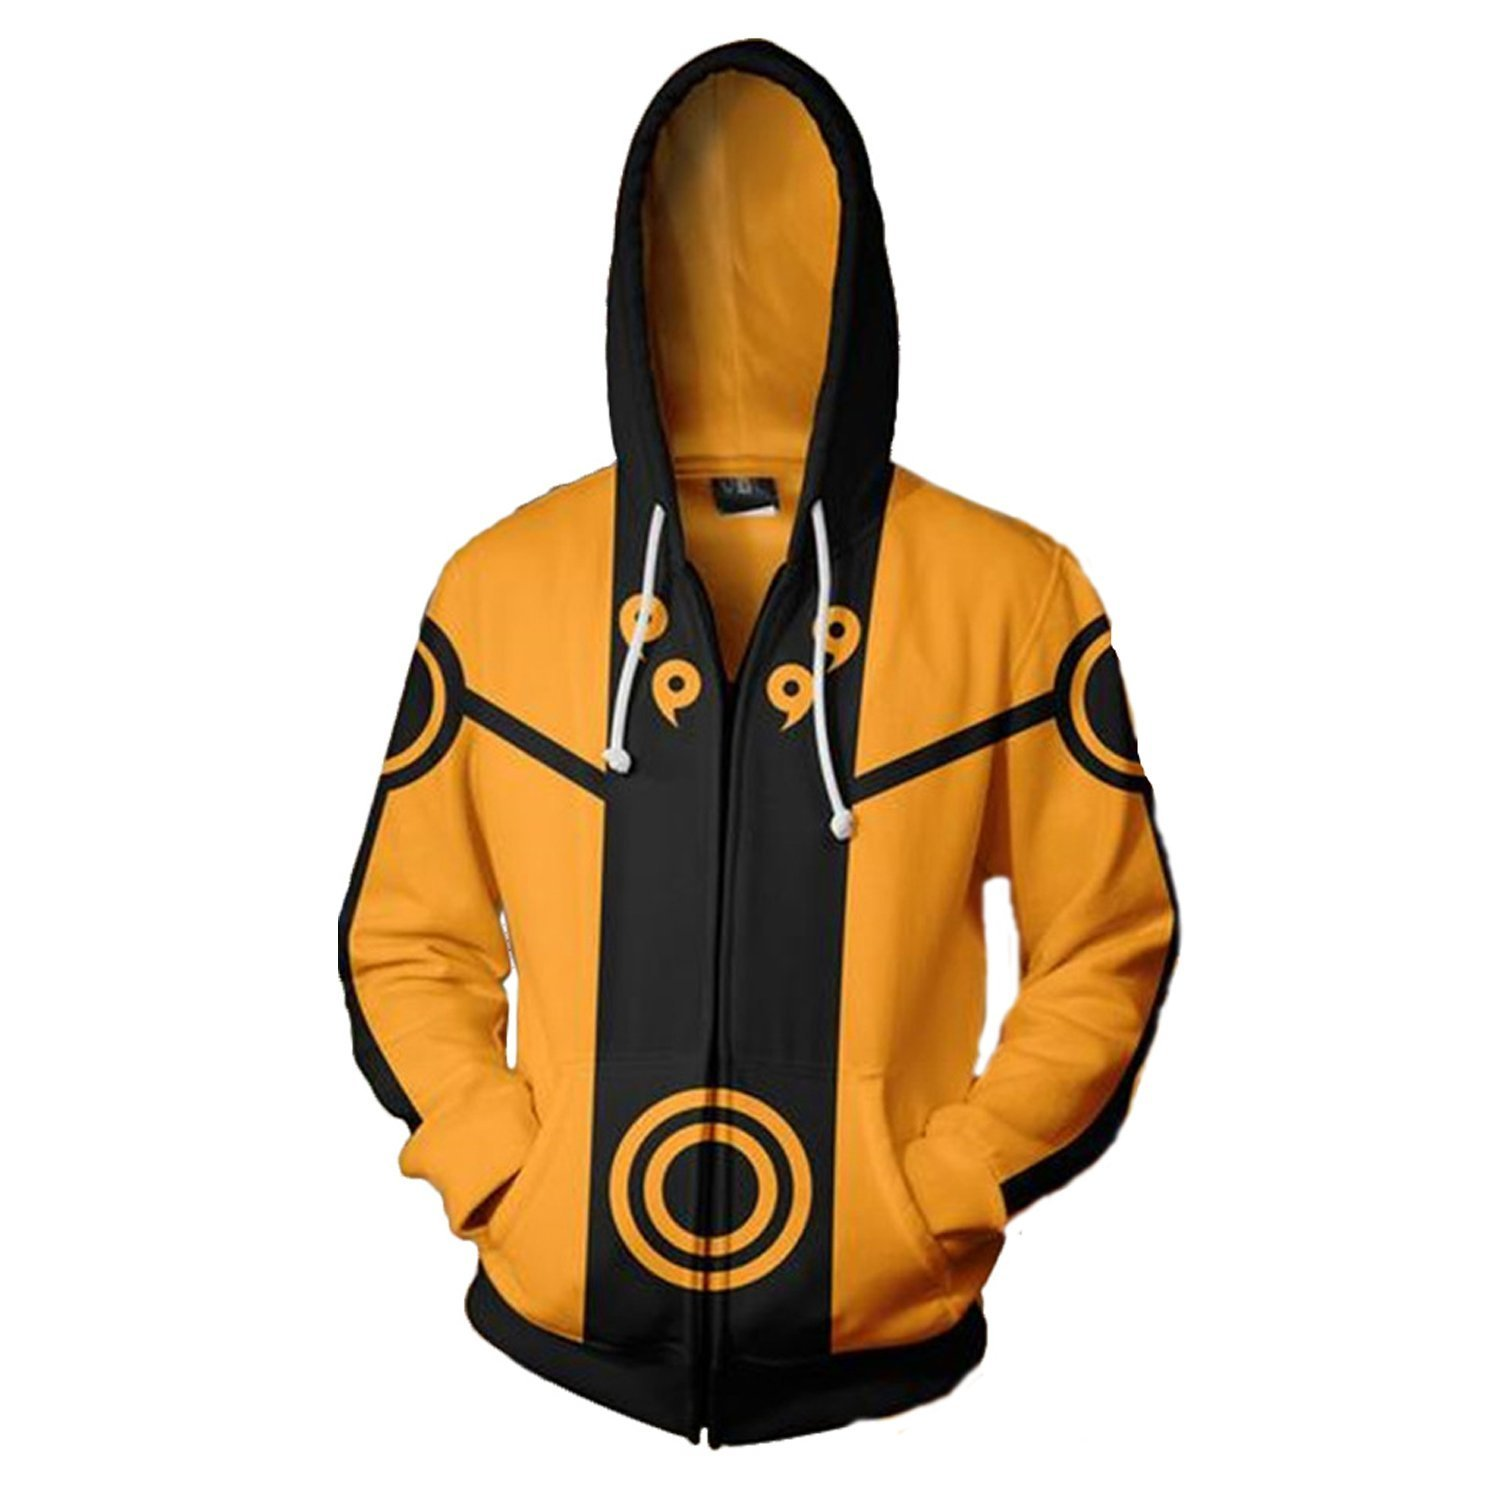 ValorSoul Adult Hoodies Uniform Jacket Cosplay Hoodies with Zippers (XL/US M, Yellow)